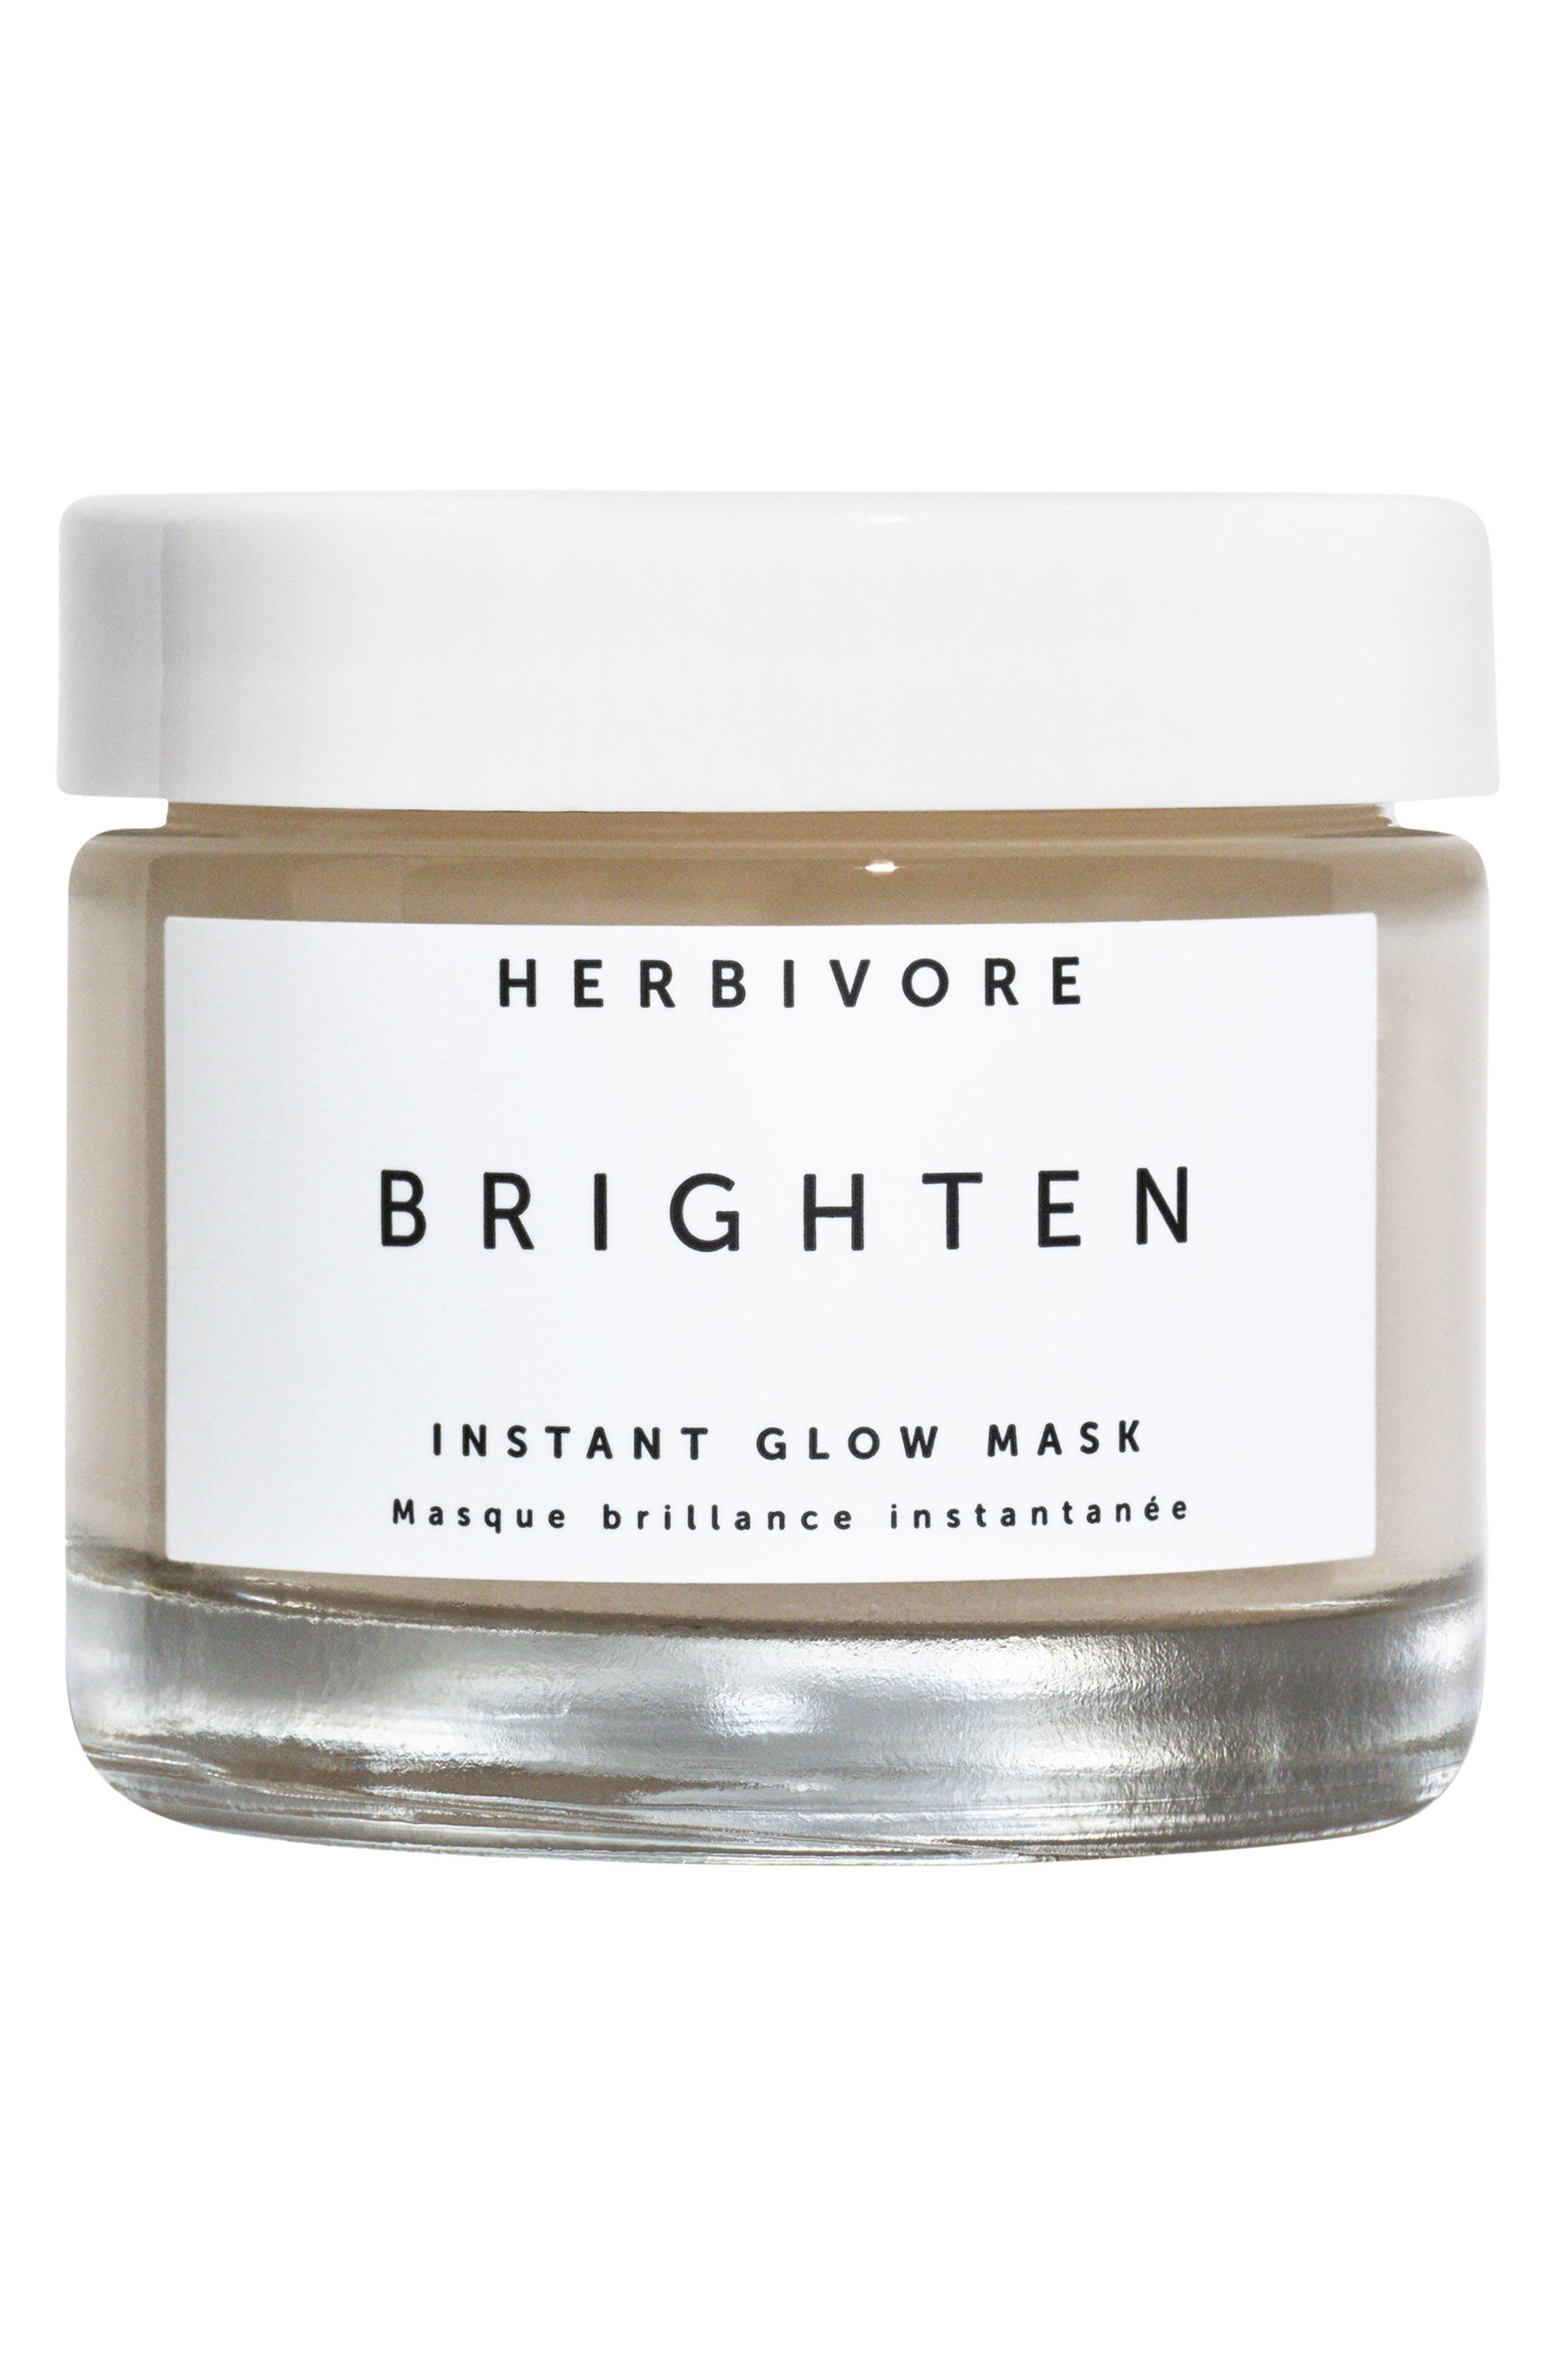 Alternate Image 1 Selected - Herbivore Botanicals Brighten Pineapple Enzyme + Gemstone Instant Glow Mask